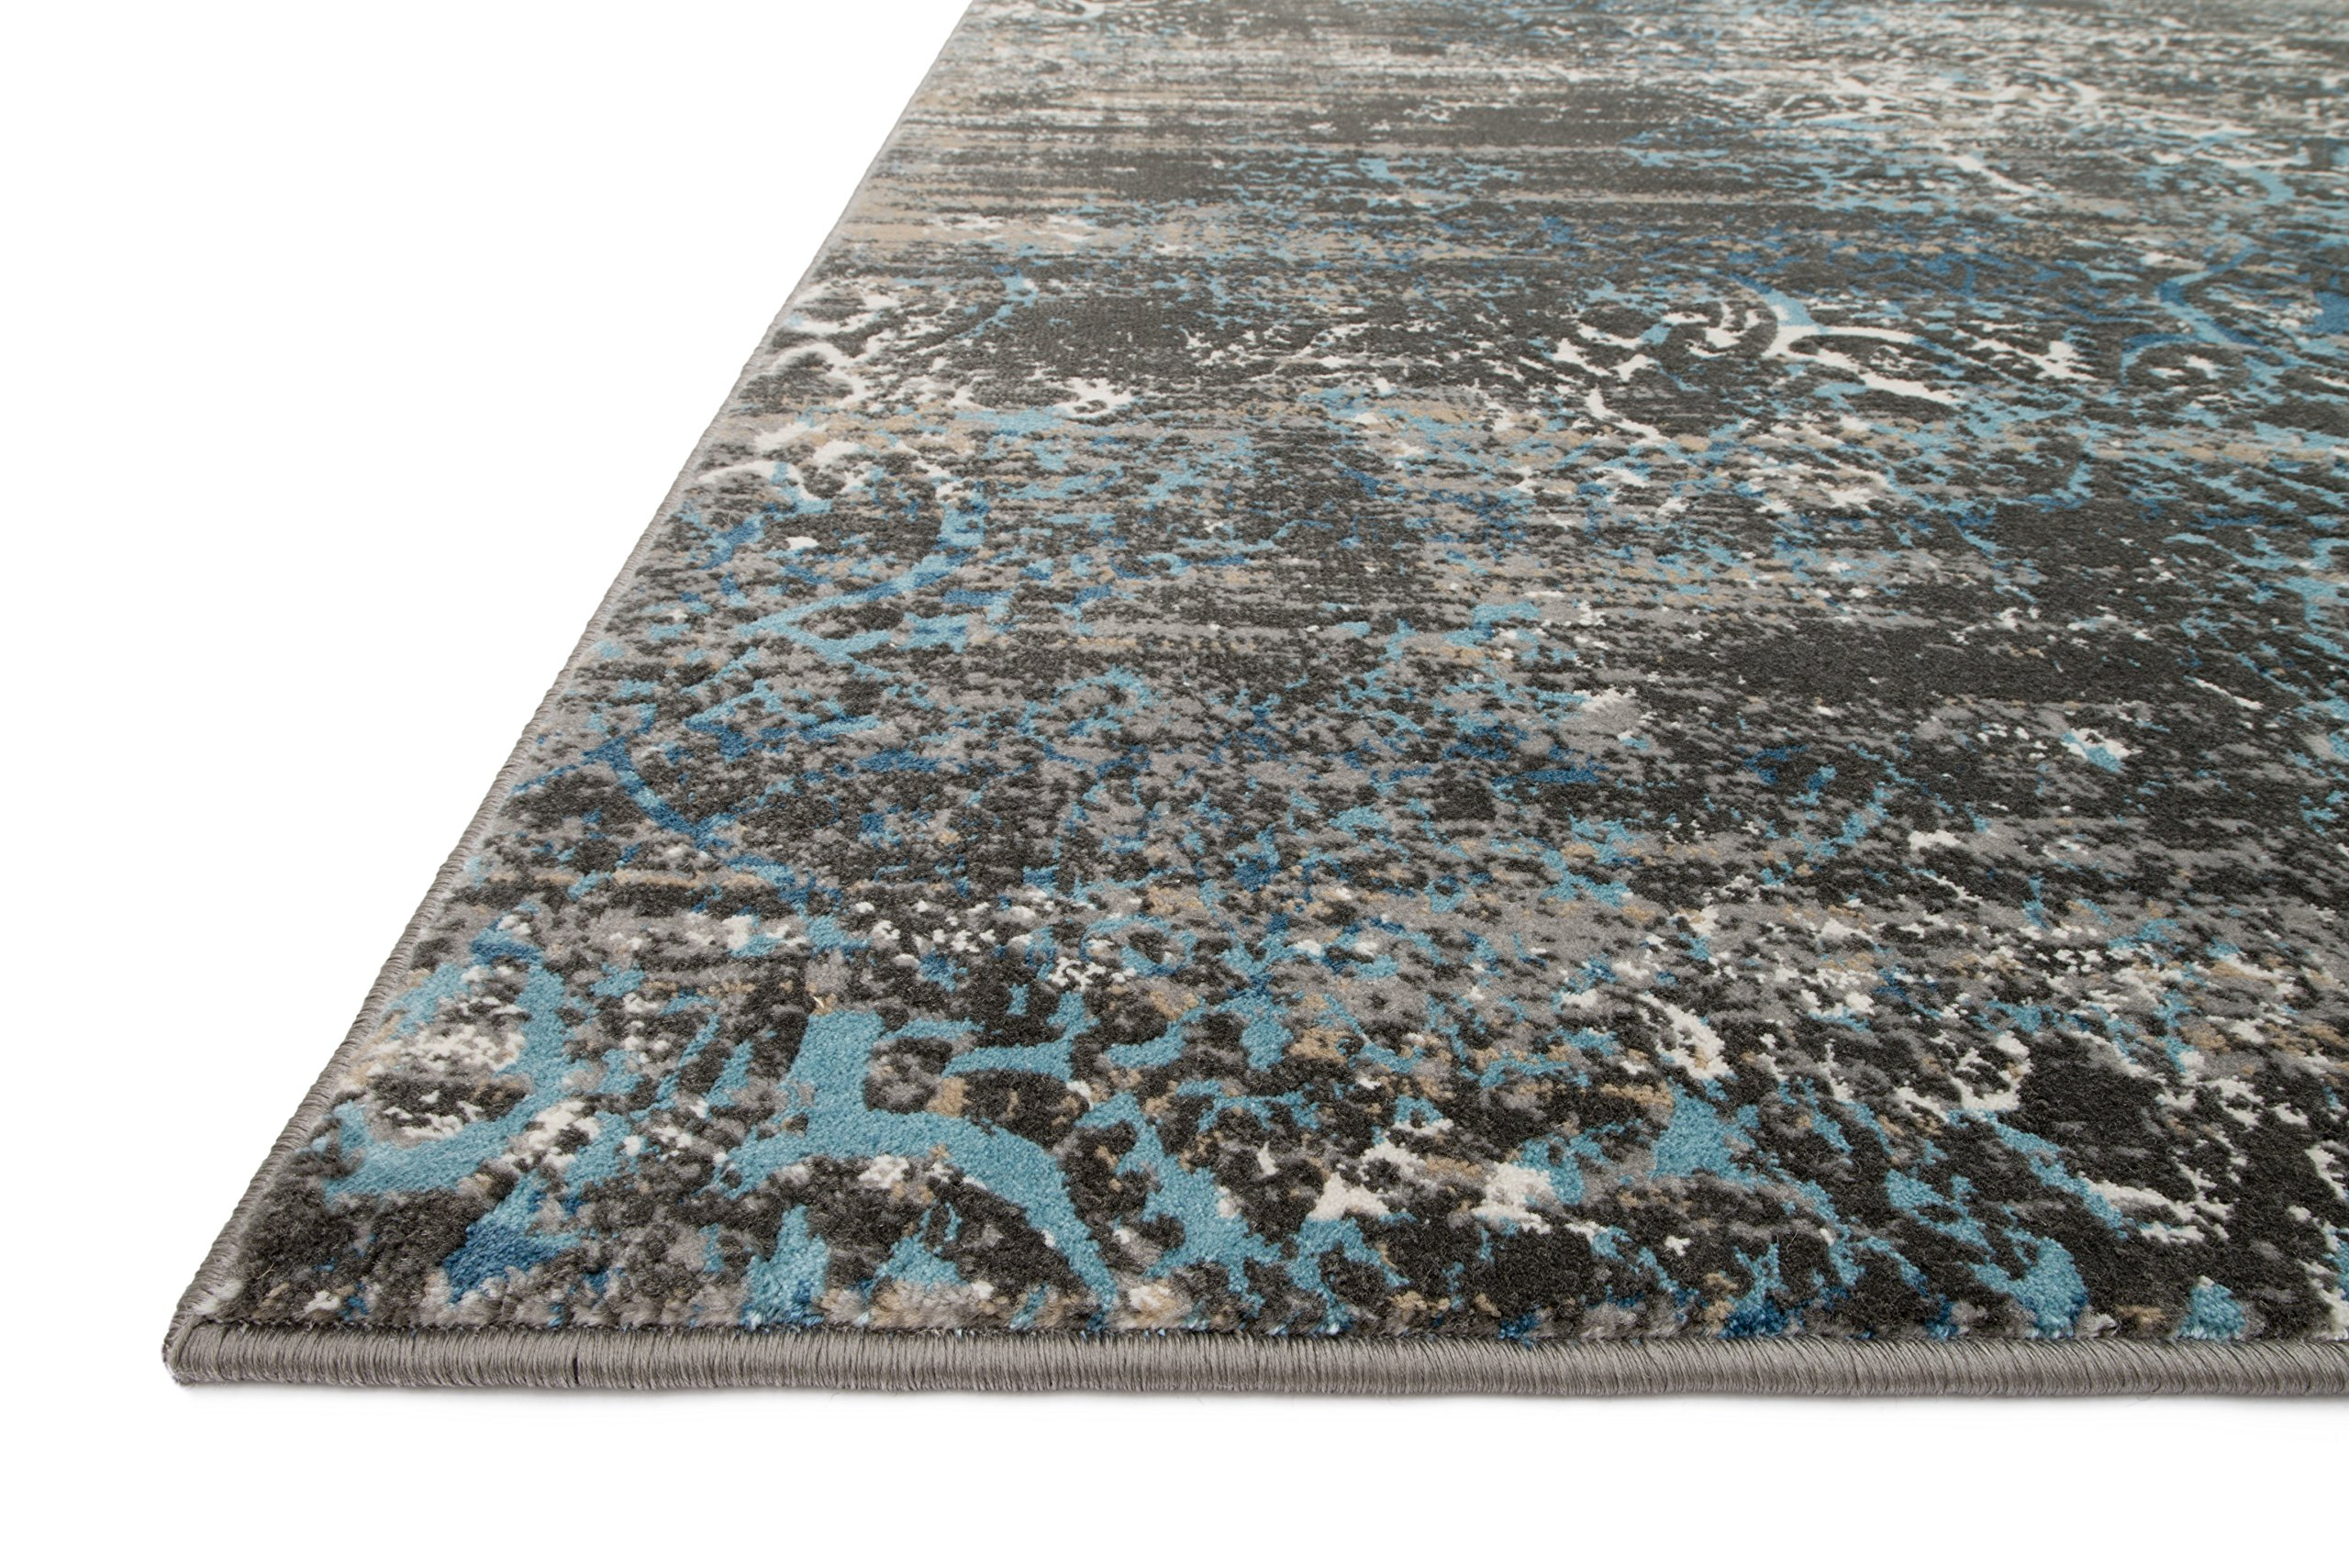 Loloi Rugs Kingston Collection KGSTKT-02CCBB7AAA Area Rug, 7' 10'' x 10' 10'', Charcoal/Blue by Loloi (Image #2)